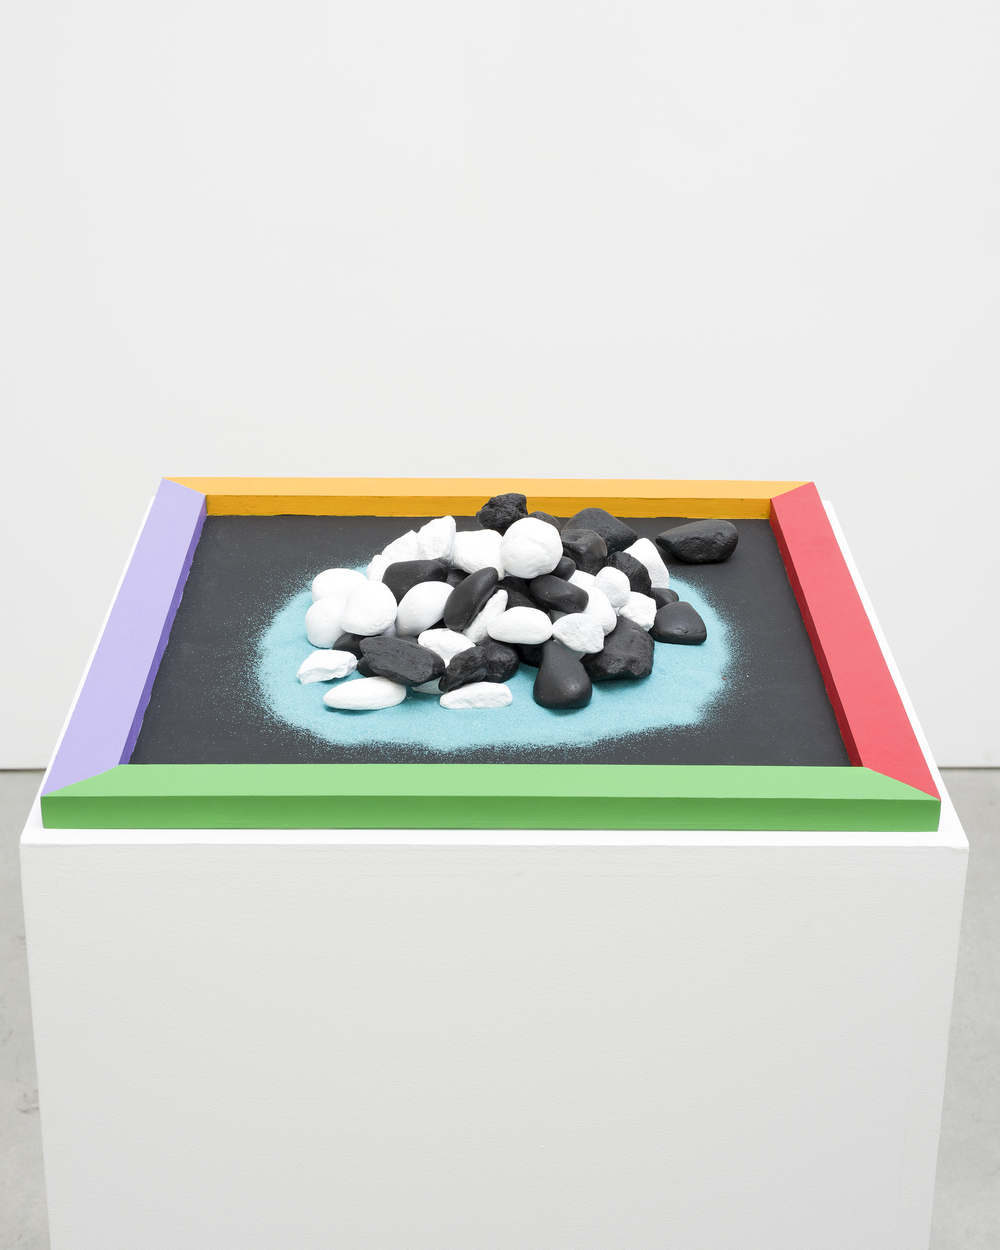 Razo, County Line, 2016, painted wood and rocks, 4 x 18 x 18 in., 10.16 x 45.72 x 45.72 cm, CNON 57.737.jpg